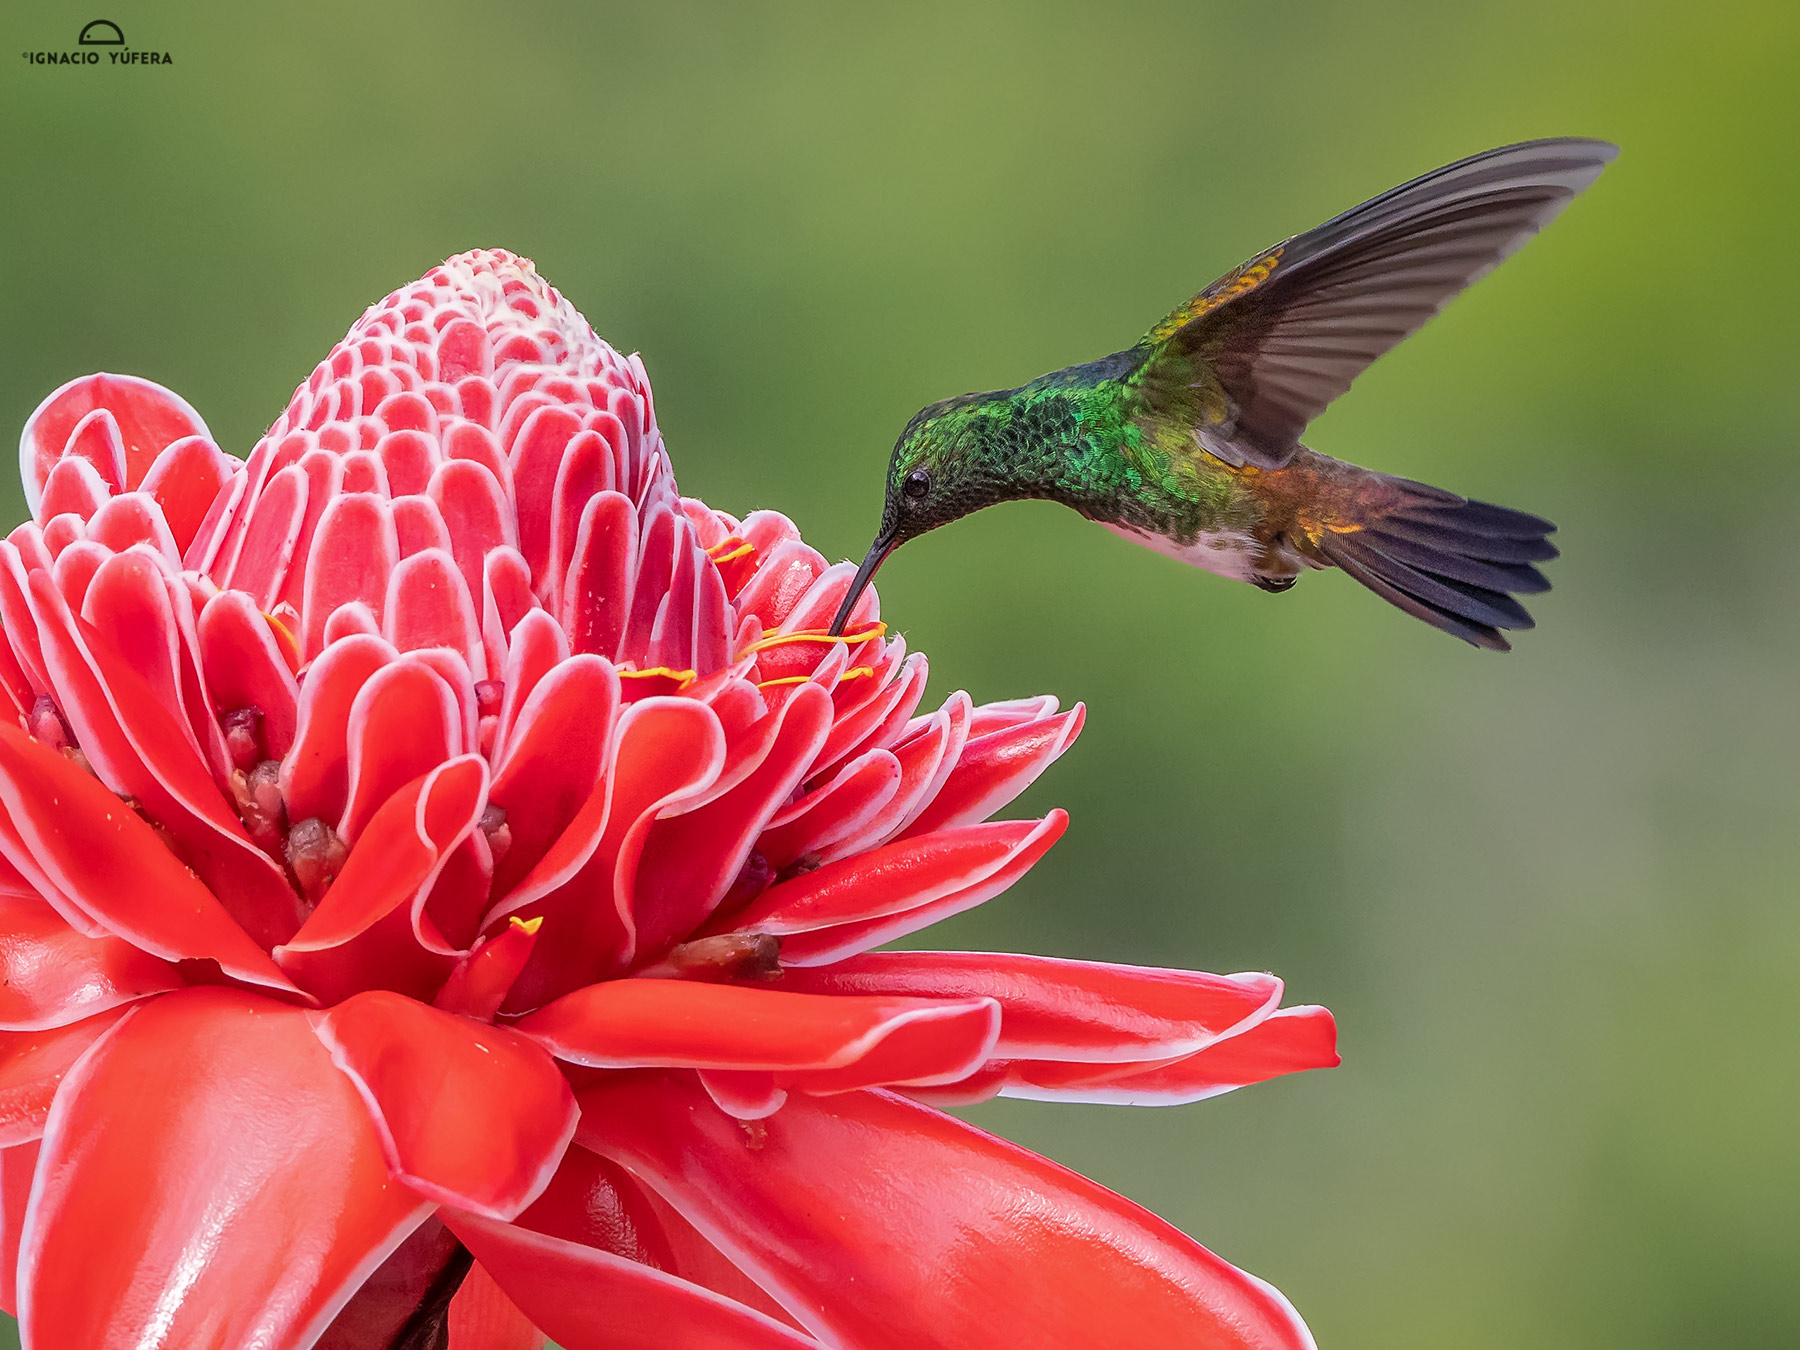 Snowy-bellied hummingbird (Amazilia edward), male feeding on torch ginger flower, Chiriquí, Panama, July